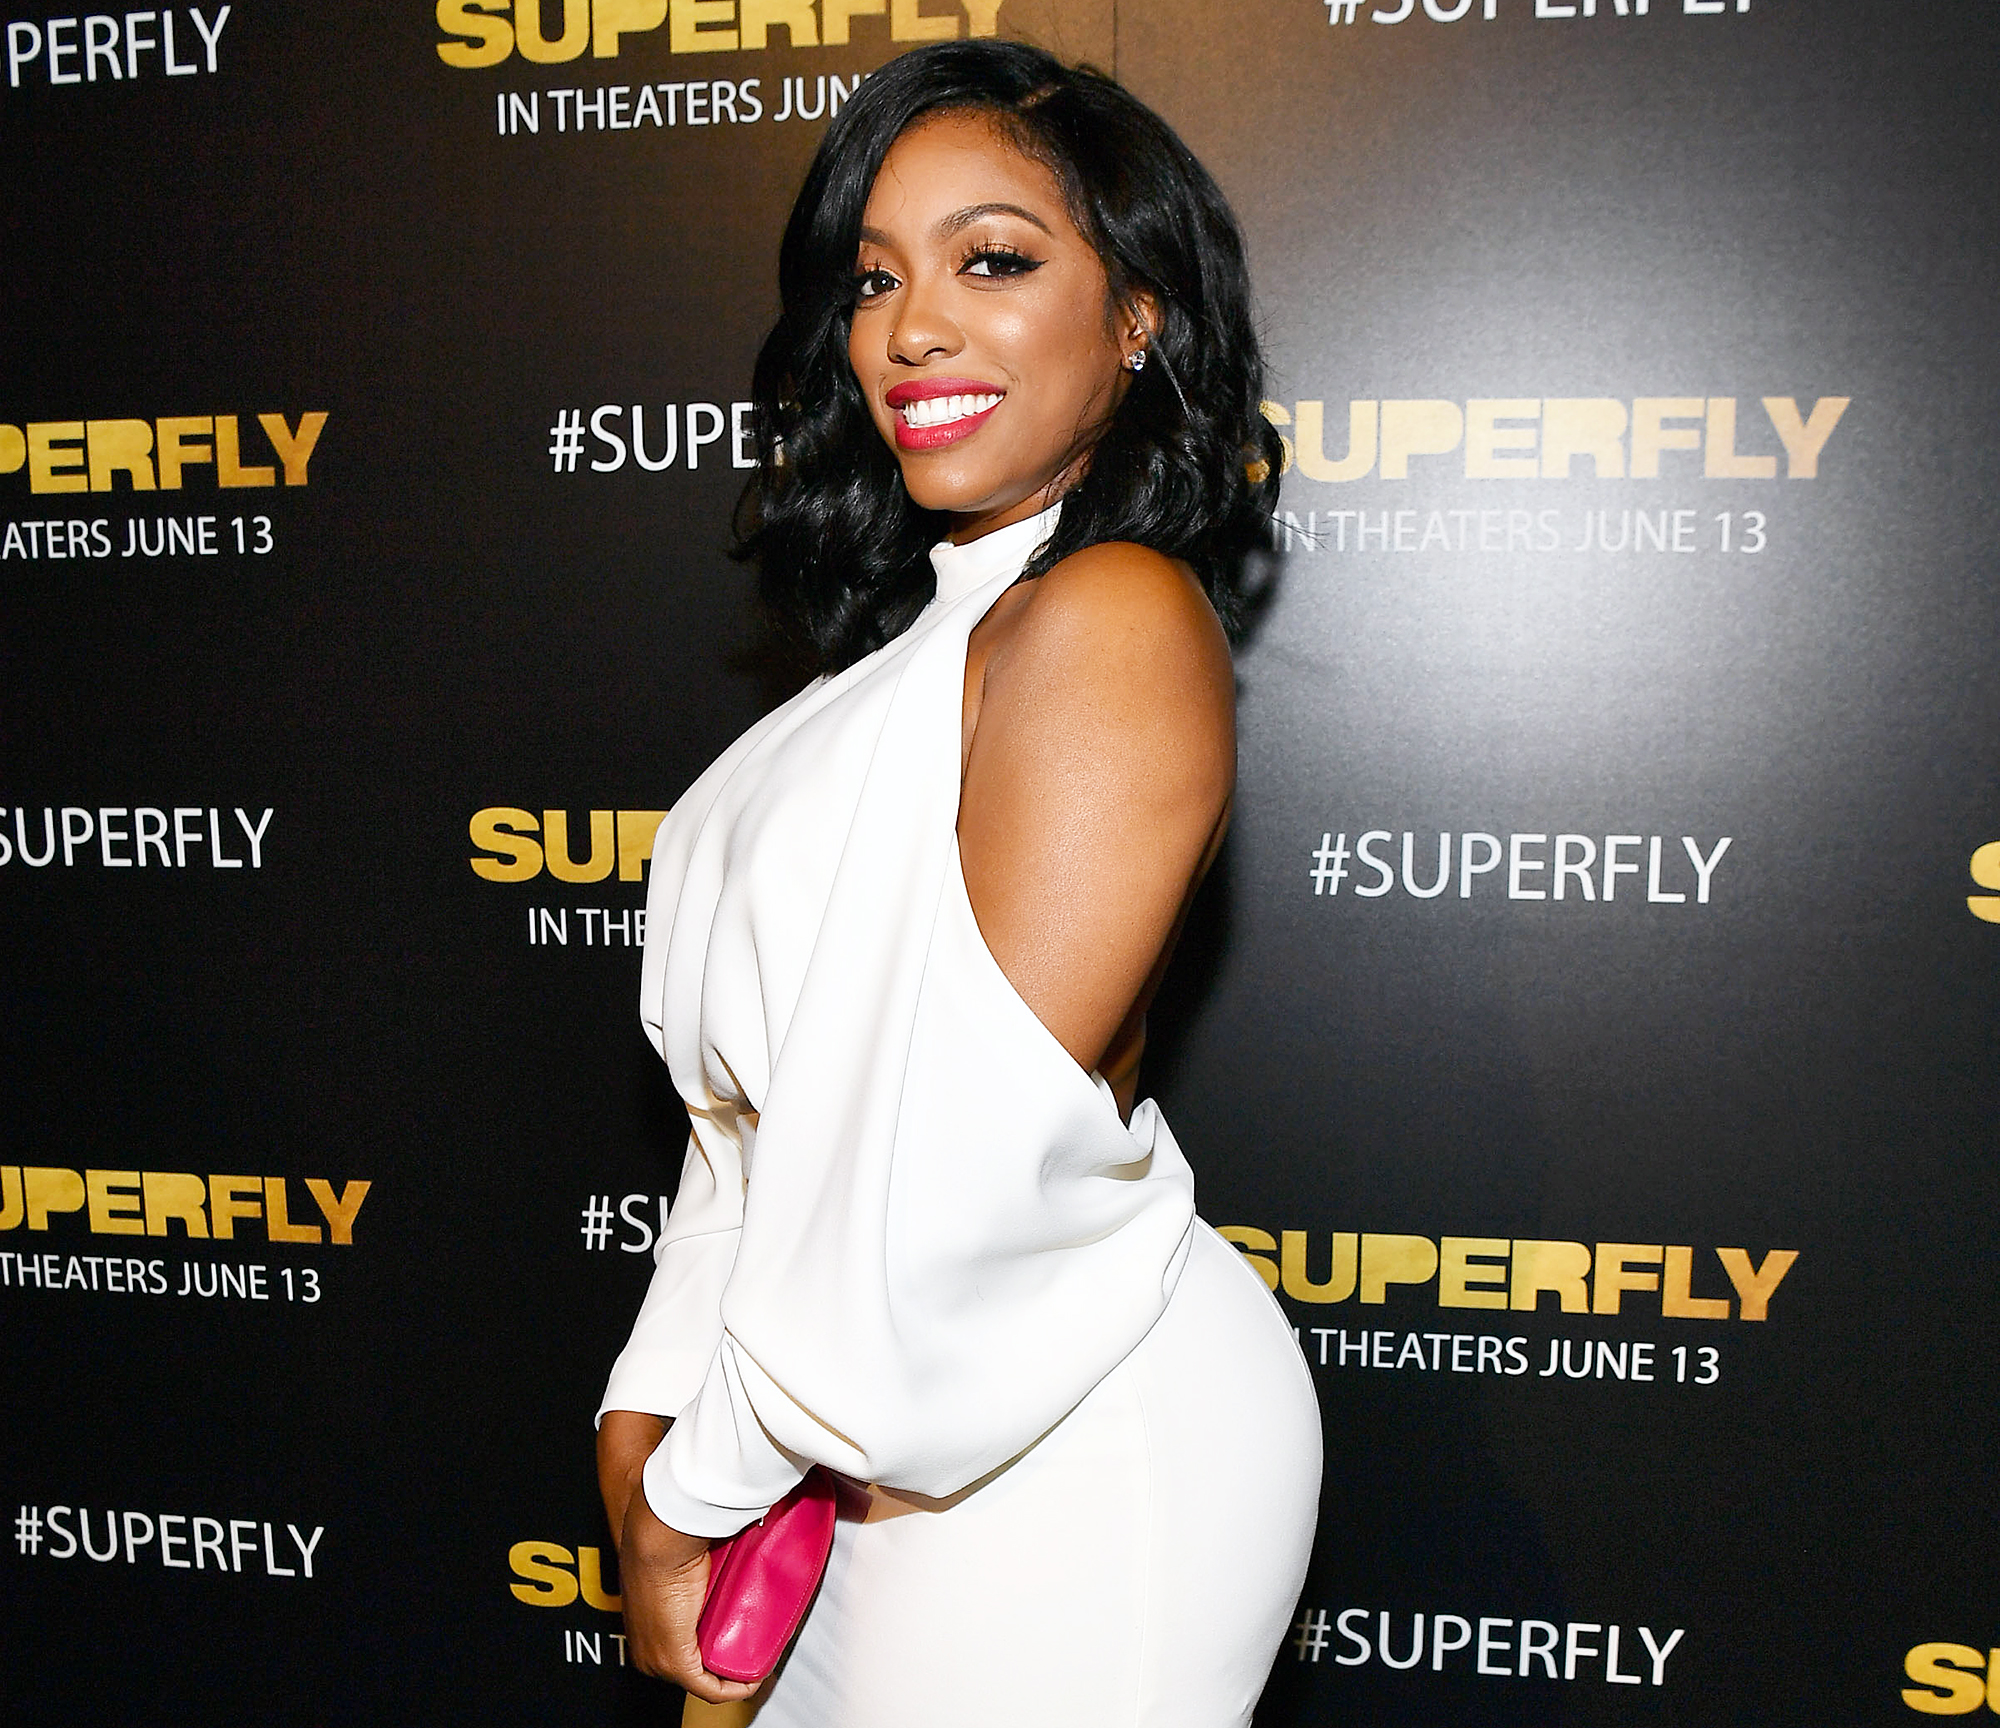 Porsha Williams Flaunted Red Hair On Andy Cohen's Show And Fans Were Impressed By Her Makeup That She Did Herself